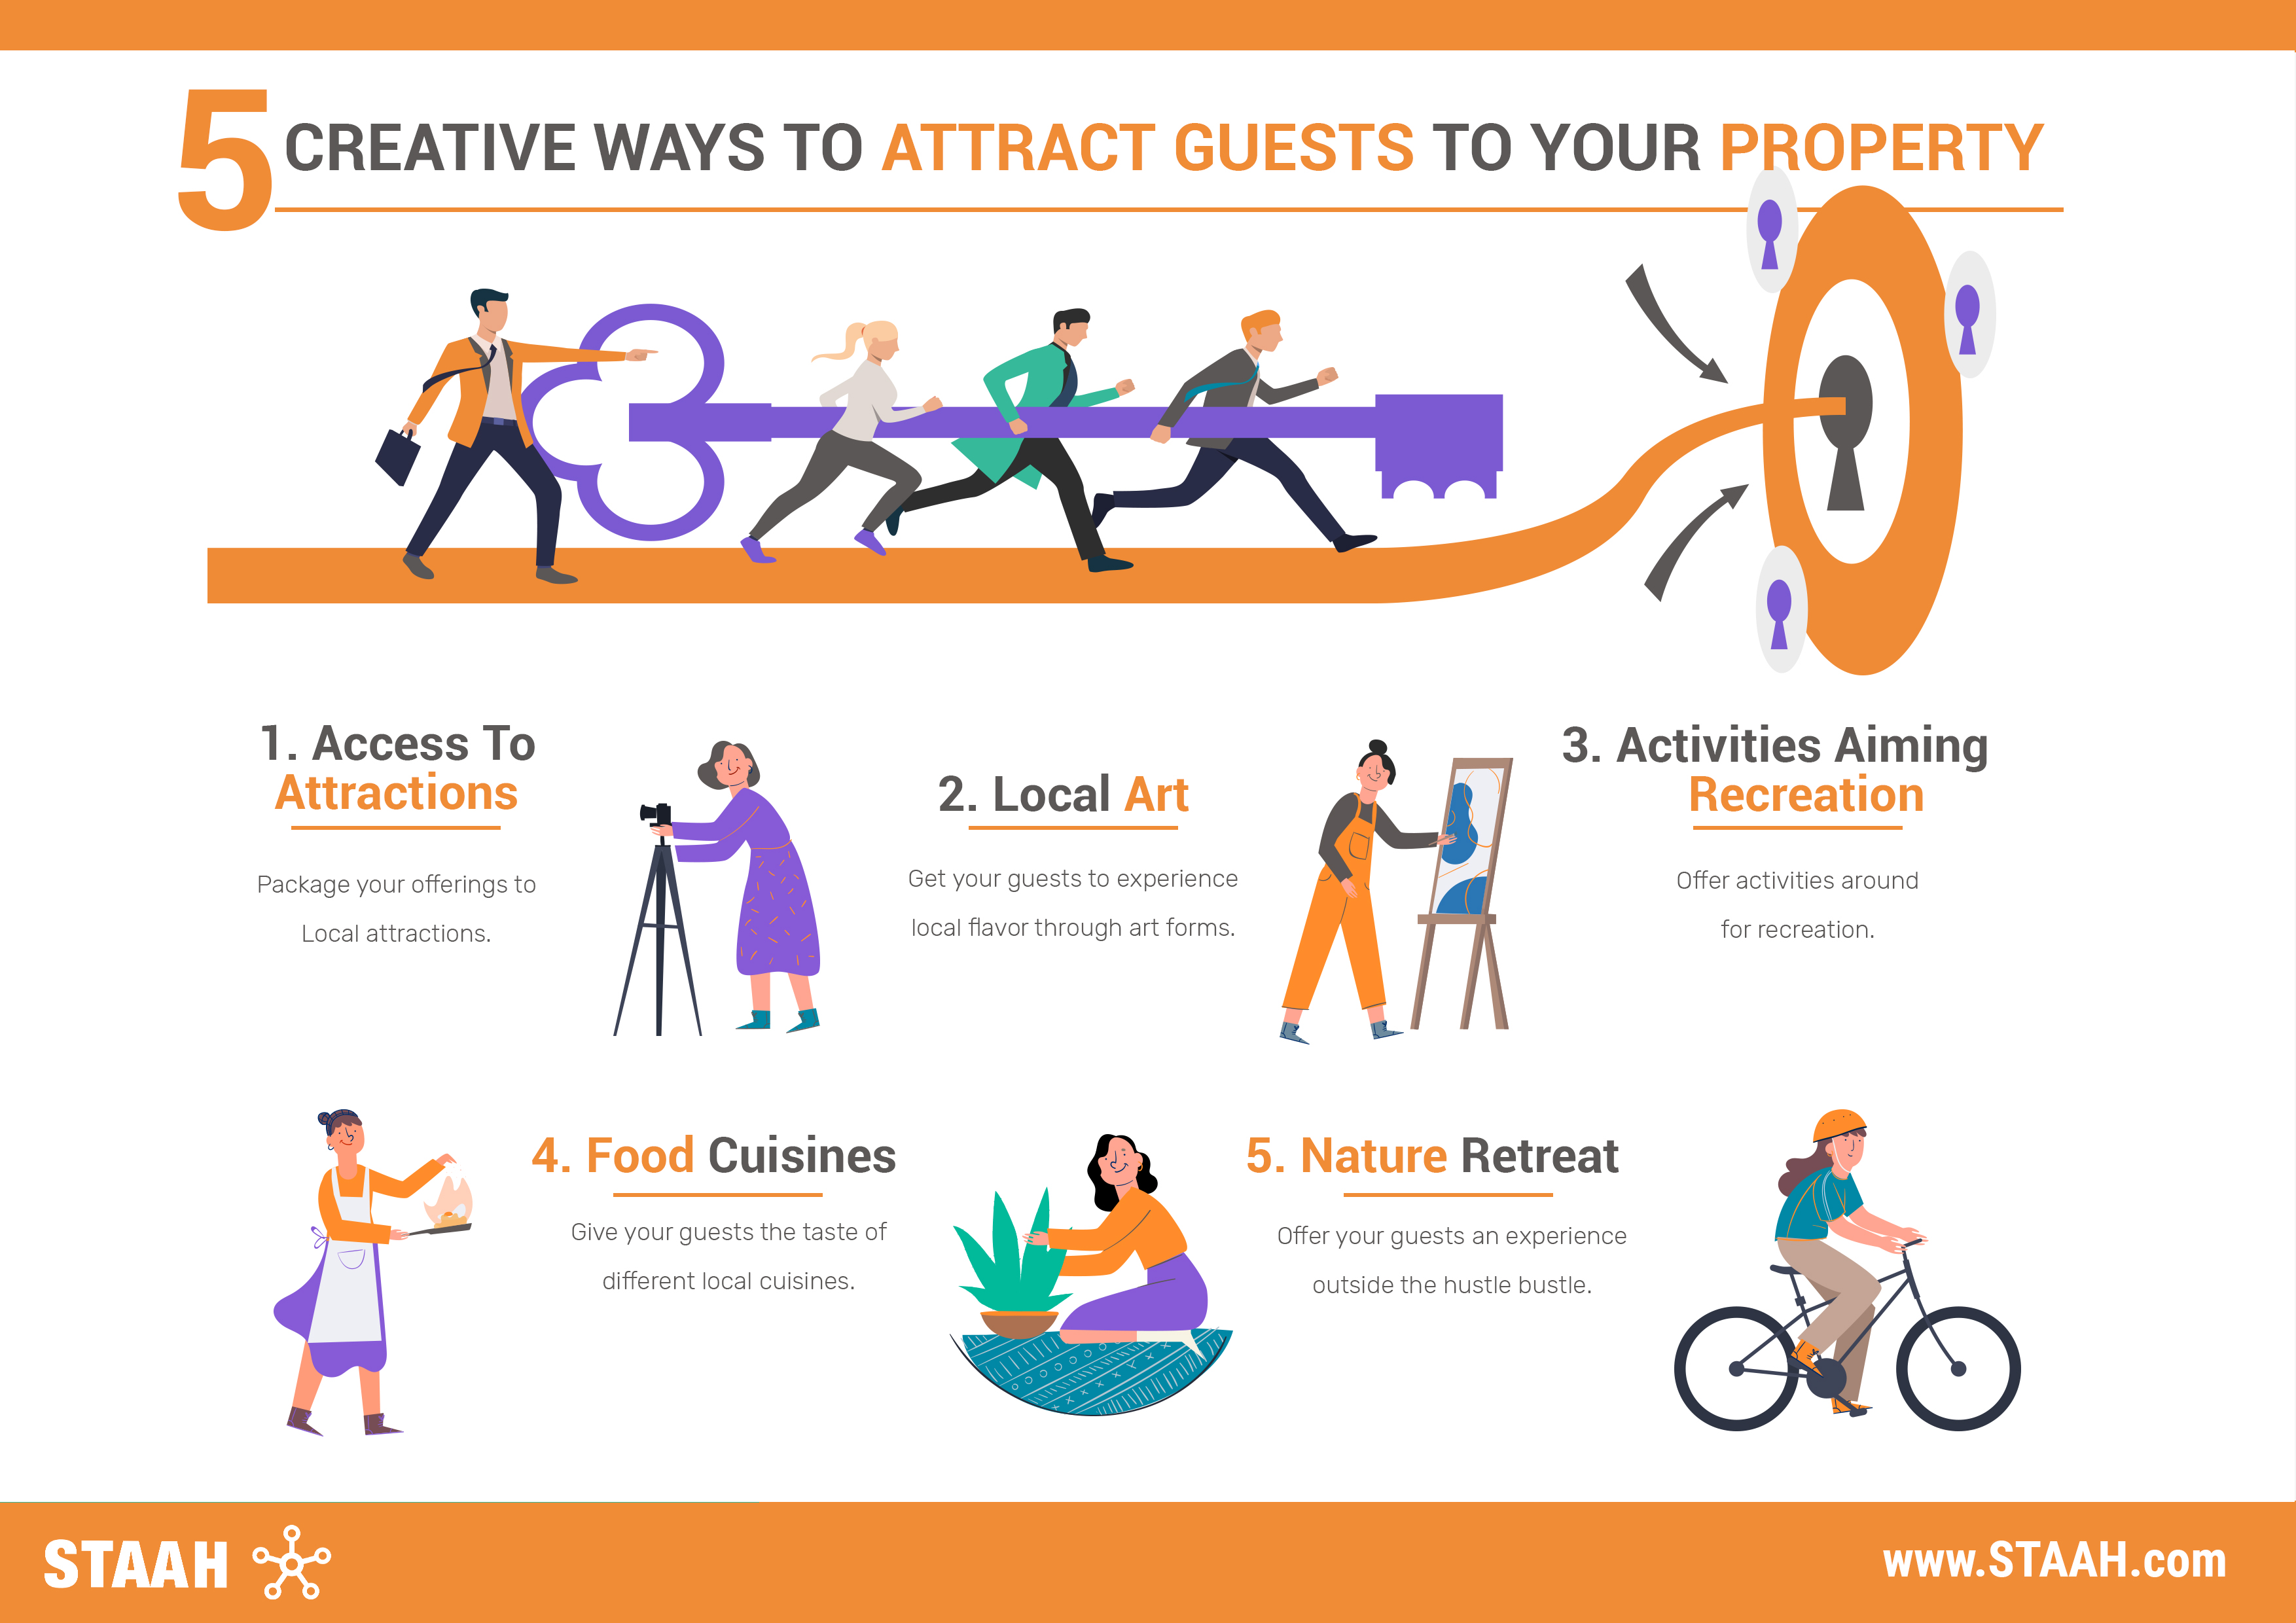 5 Creative ways to attract guests to your property